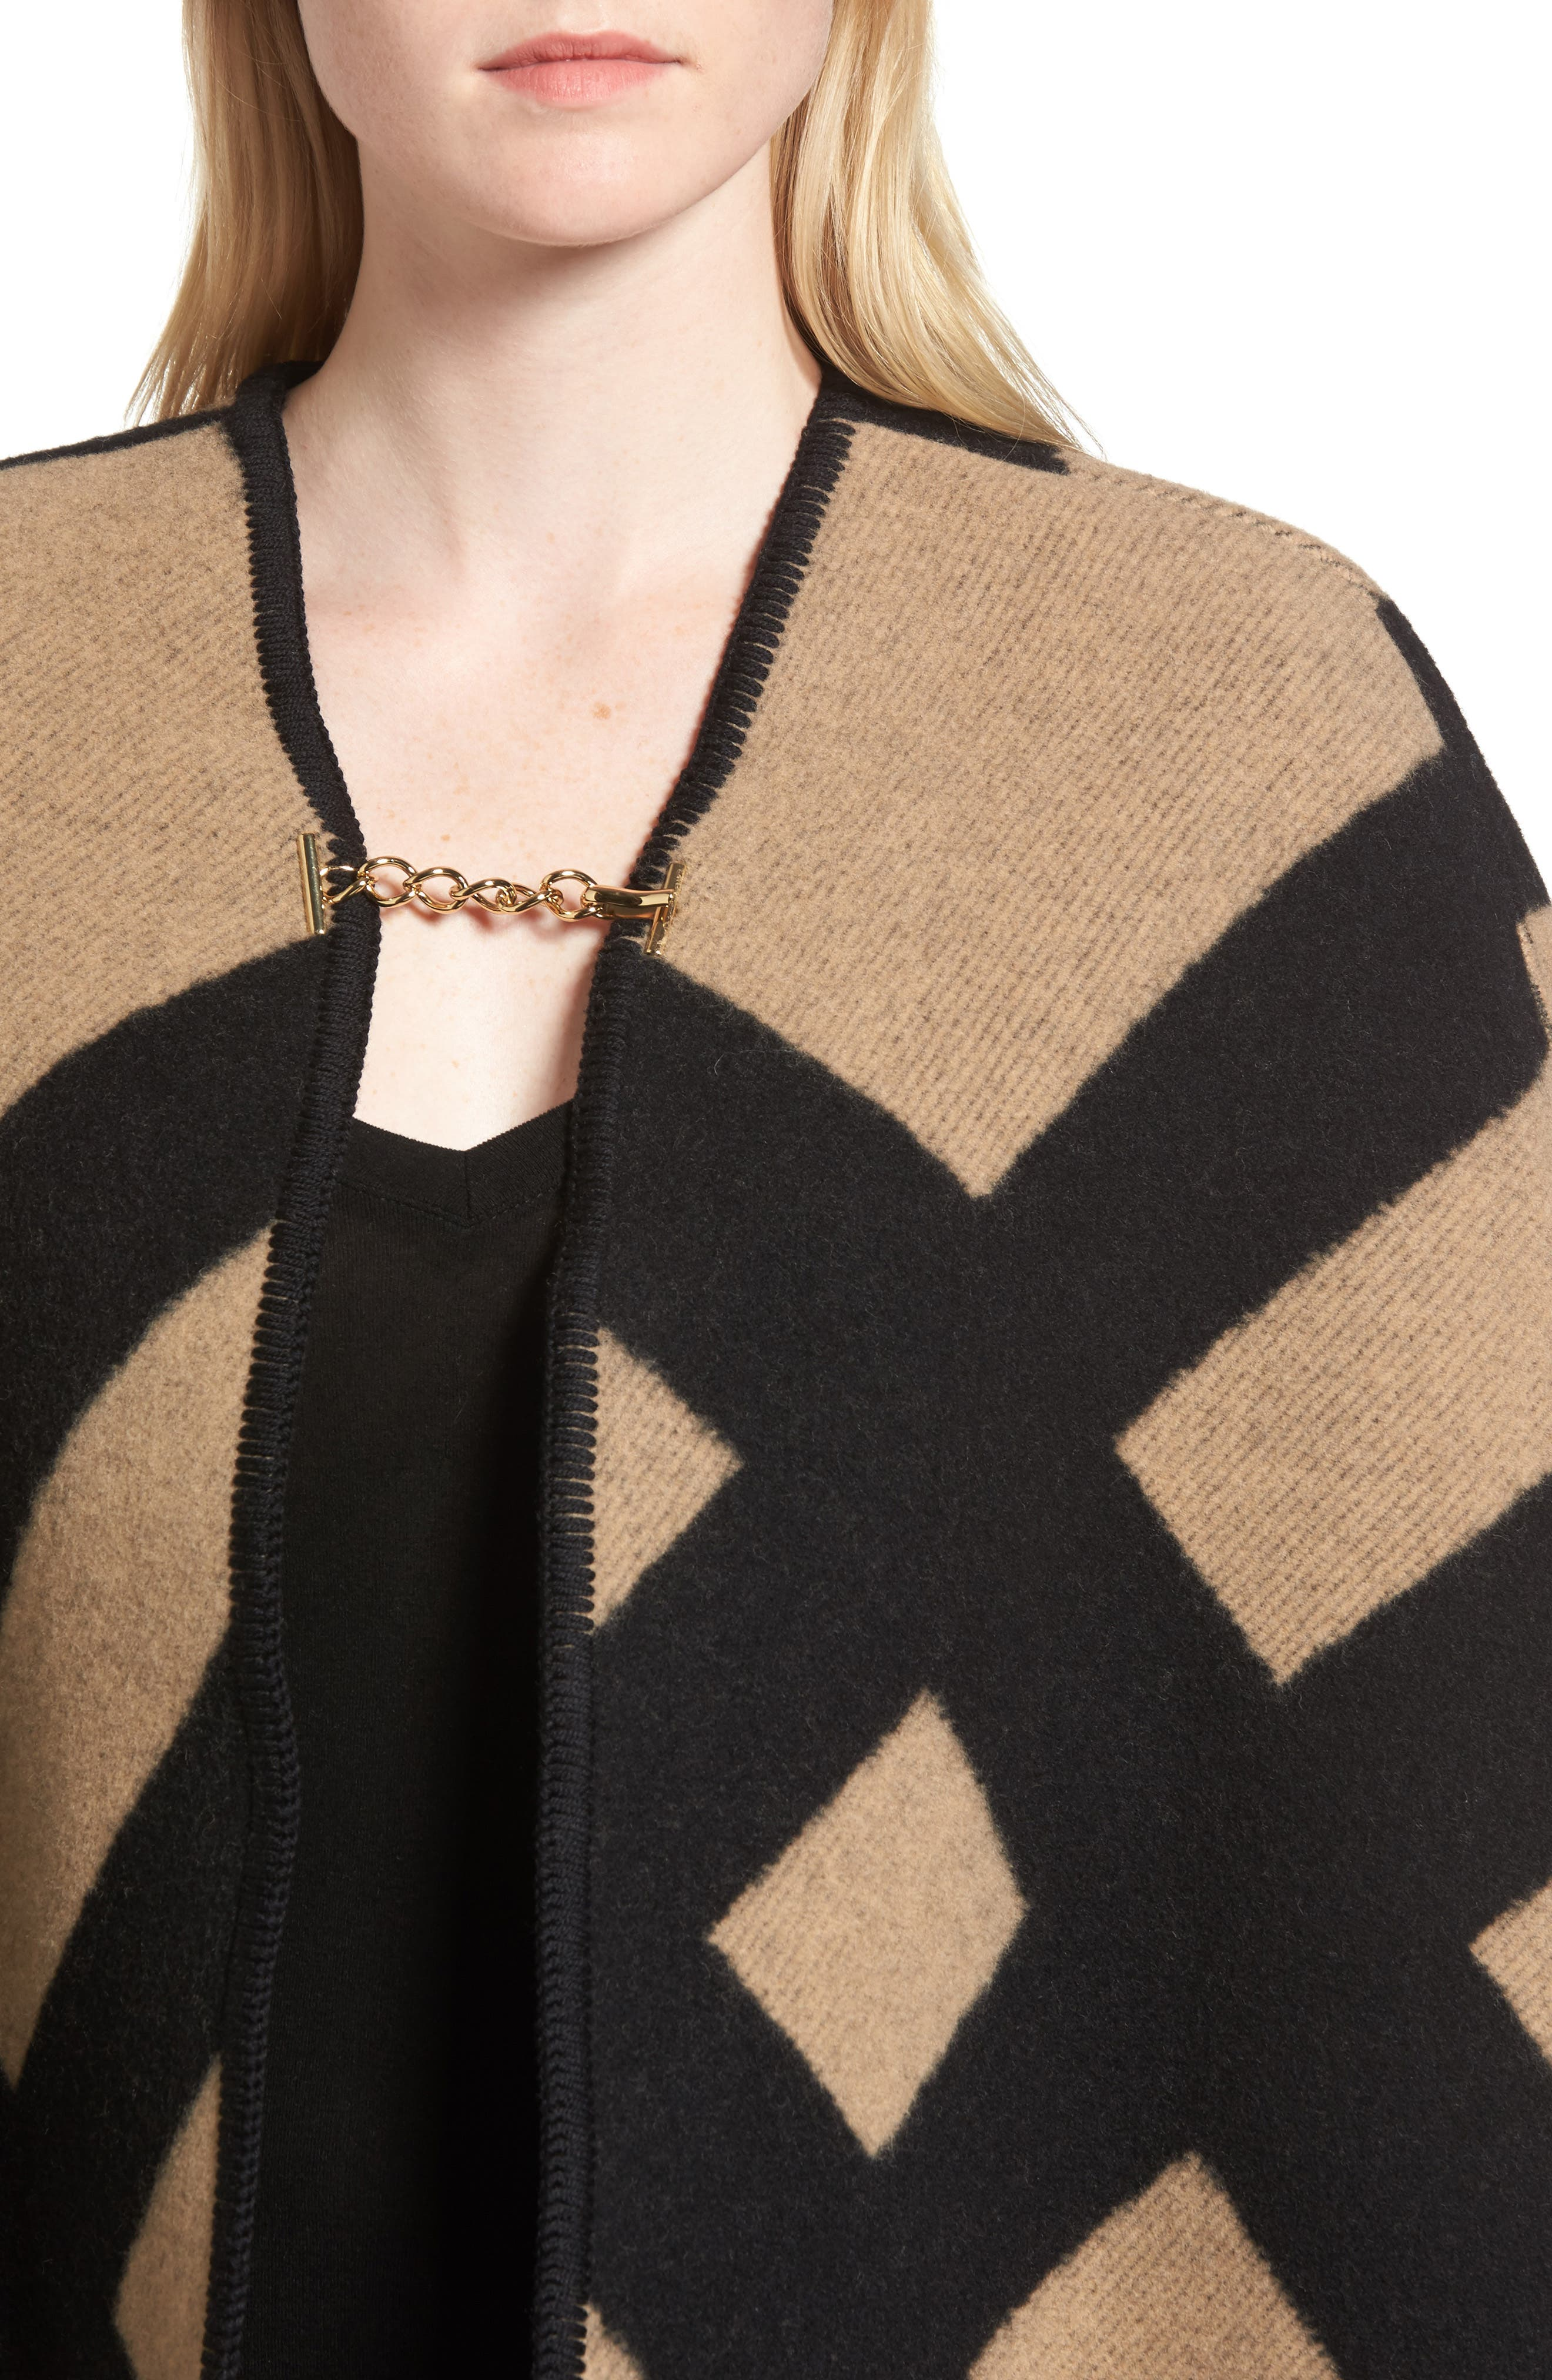 Blanket Check Wool & Cashmere Poncho,                             Alternate thumbnail 4, color,                             Camel/ Black